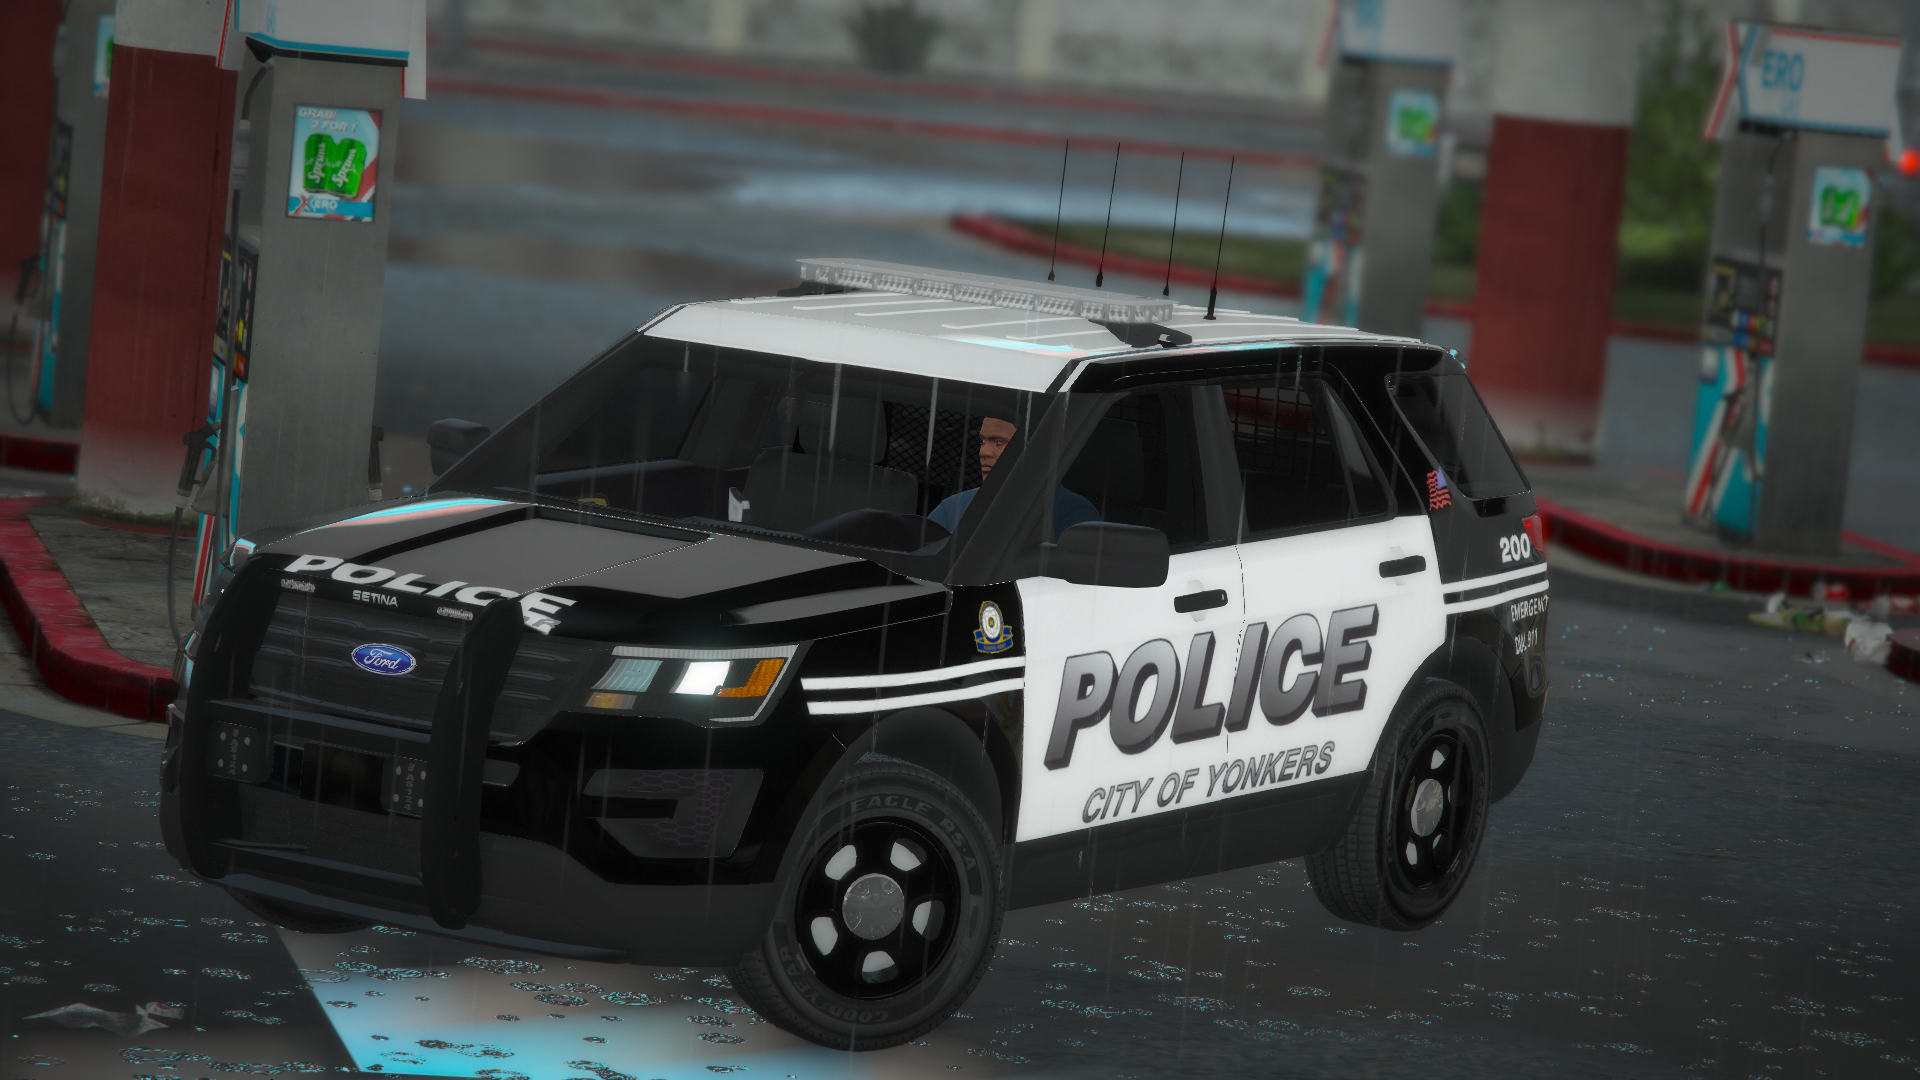 City of Yonkers P2